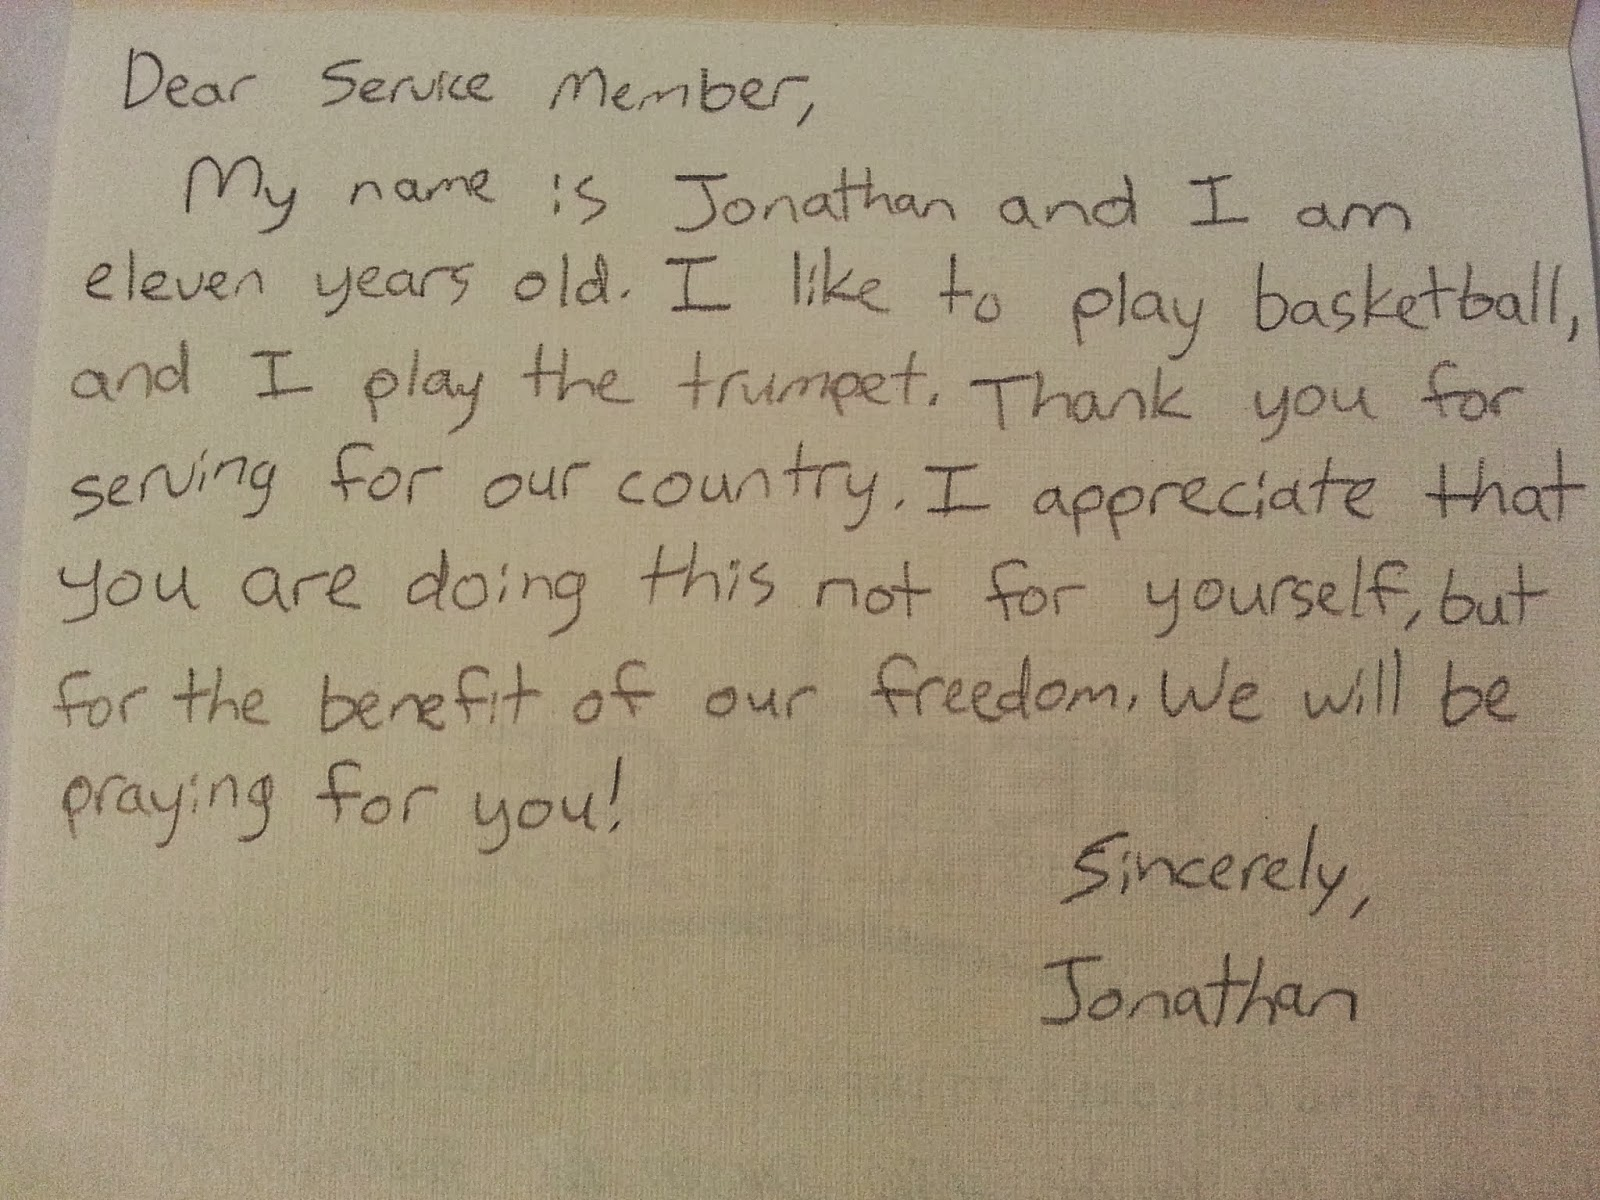 Hcs 30 Acts Of Service Heritage 5th Graders Write Letters